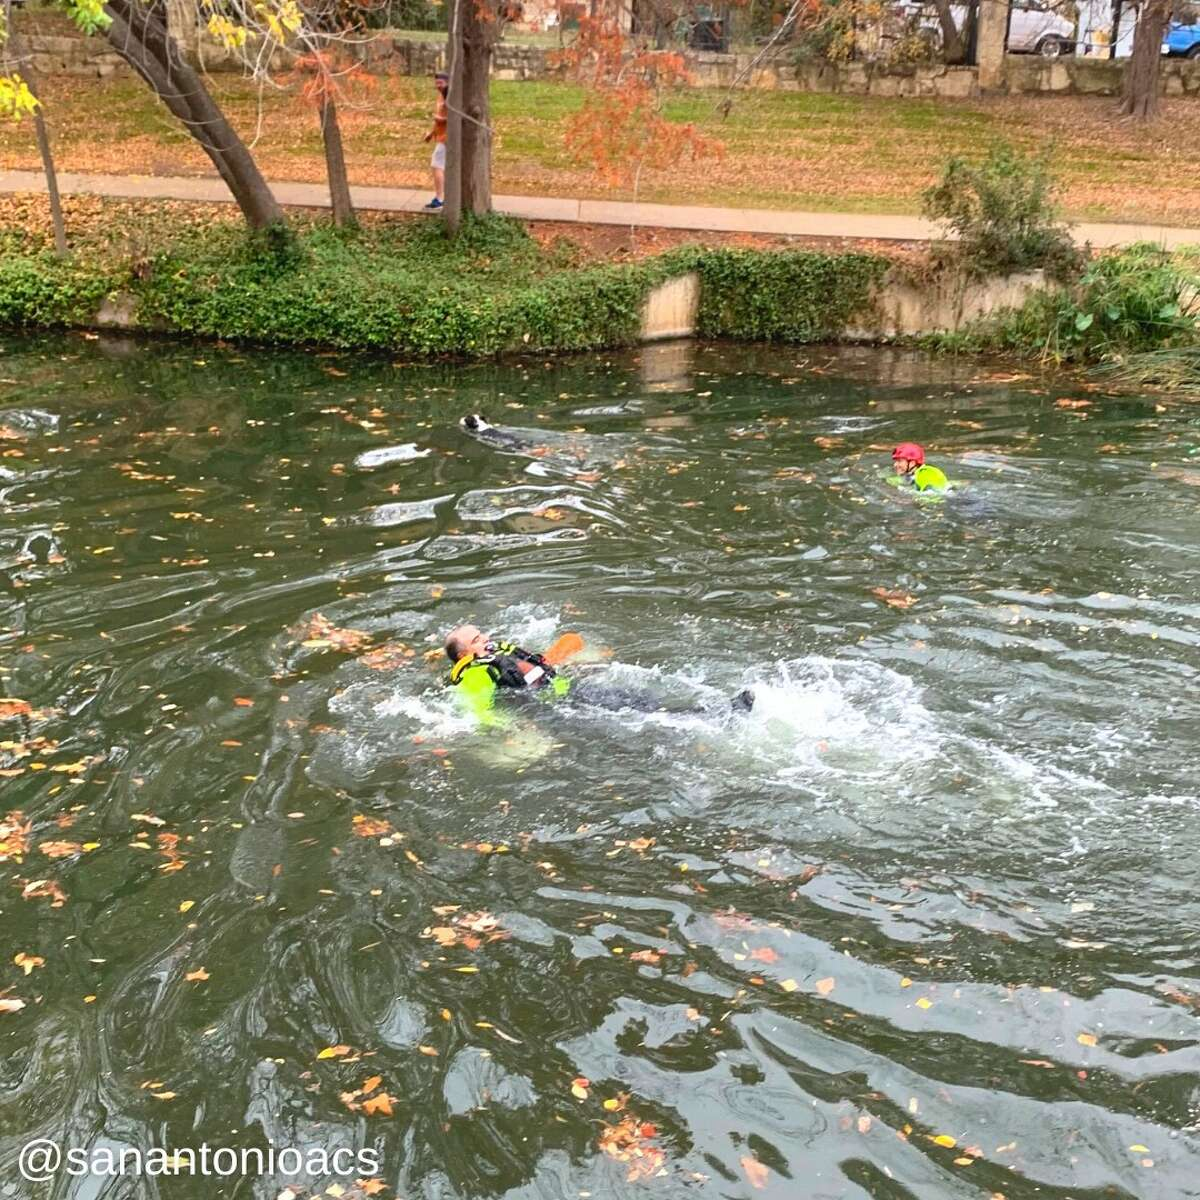 ACS was dispatched and the San Antonio Fire Department's water rescue team followed up to assist in the rescue.